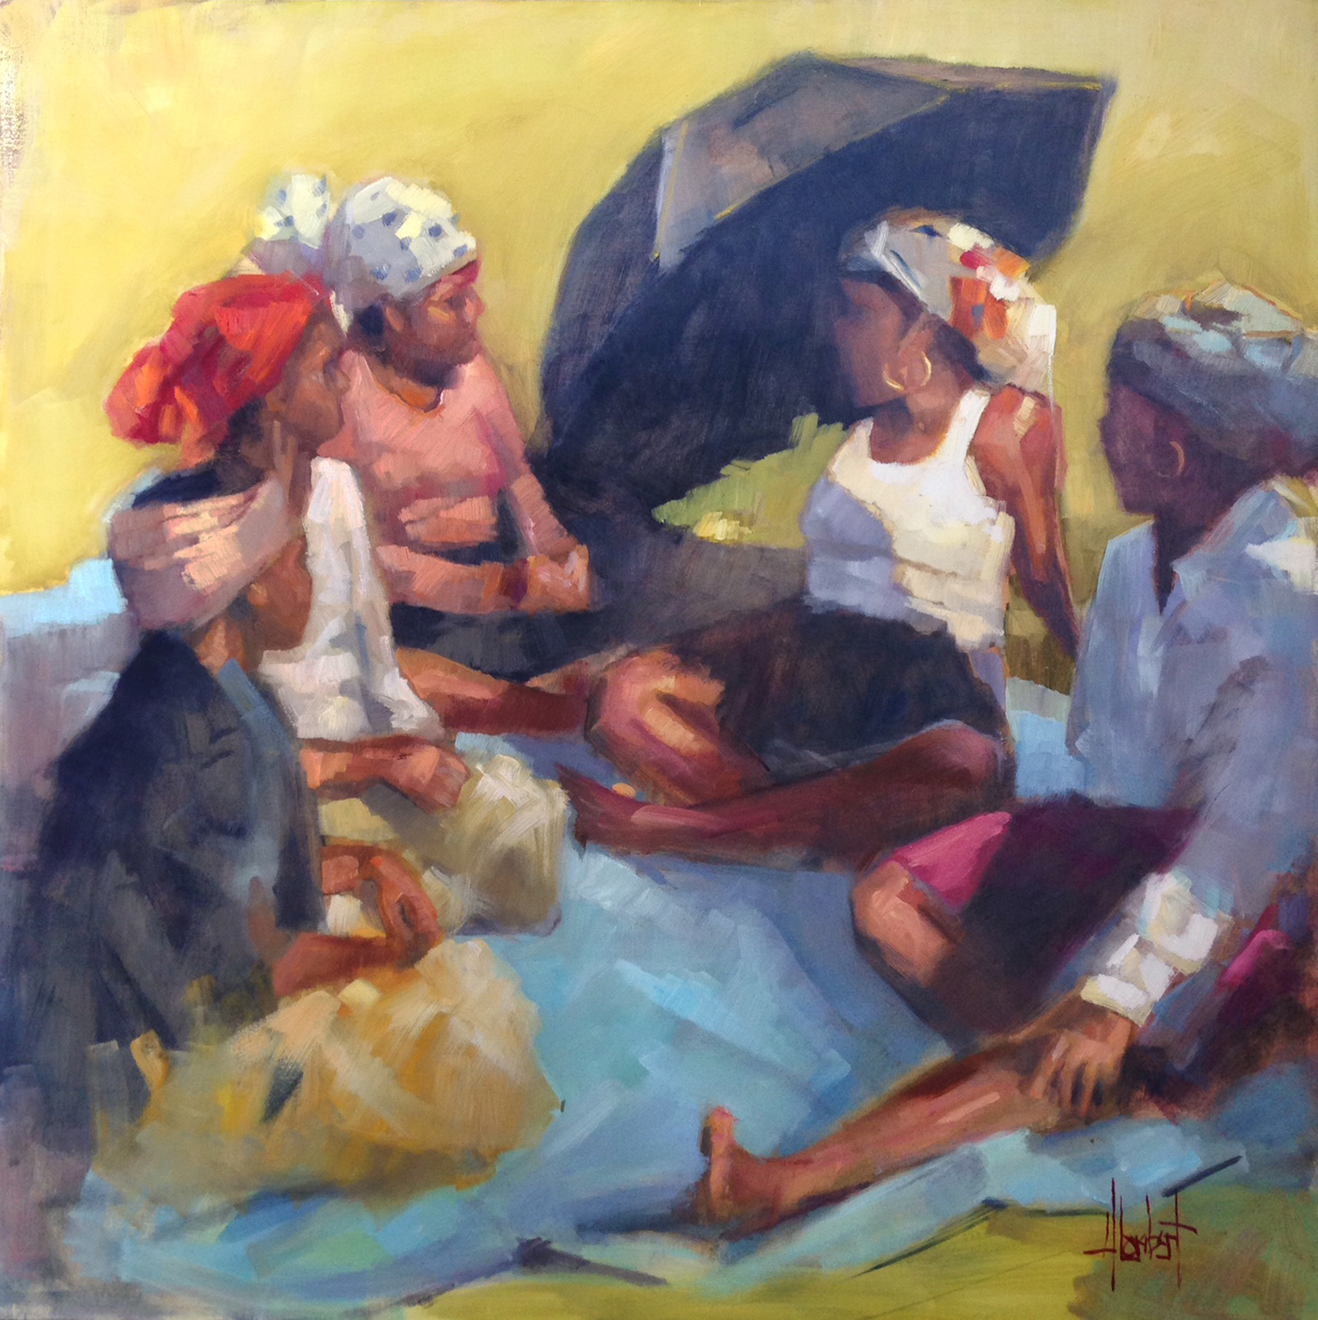 Lambert The Storyteller 24x24 oil.jpg